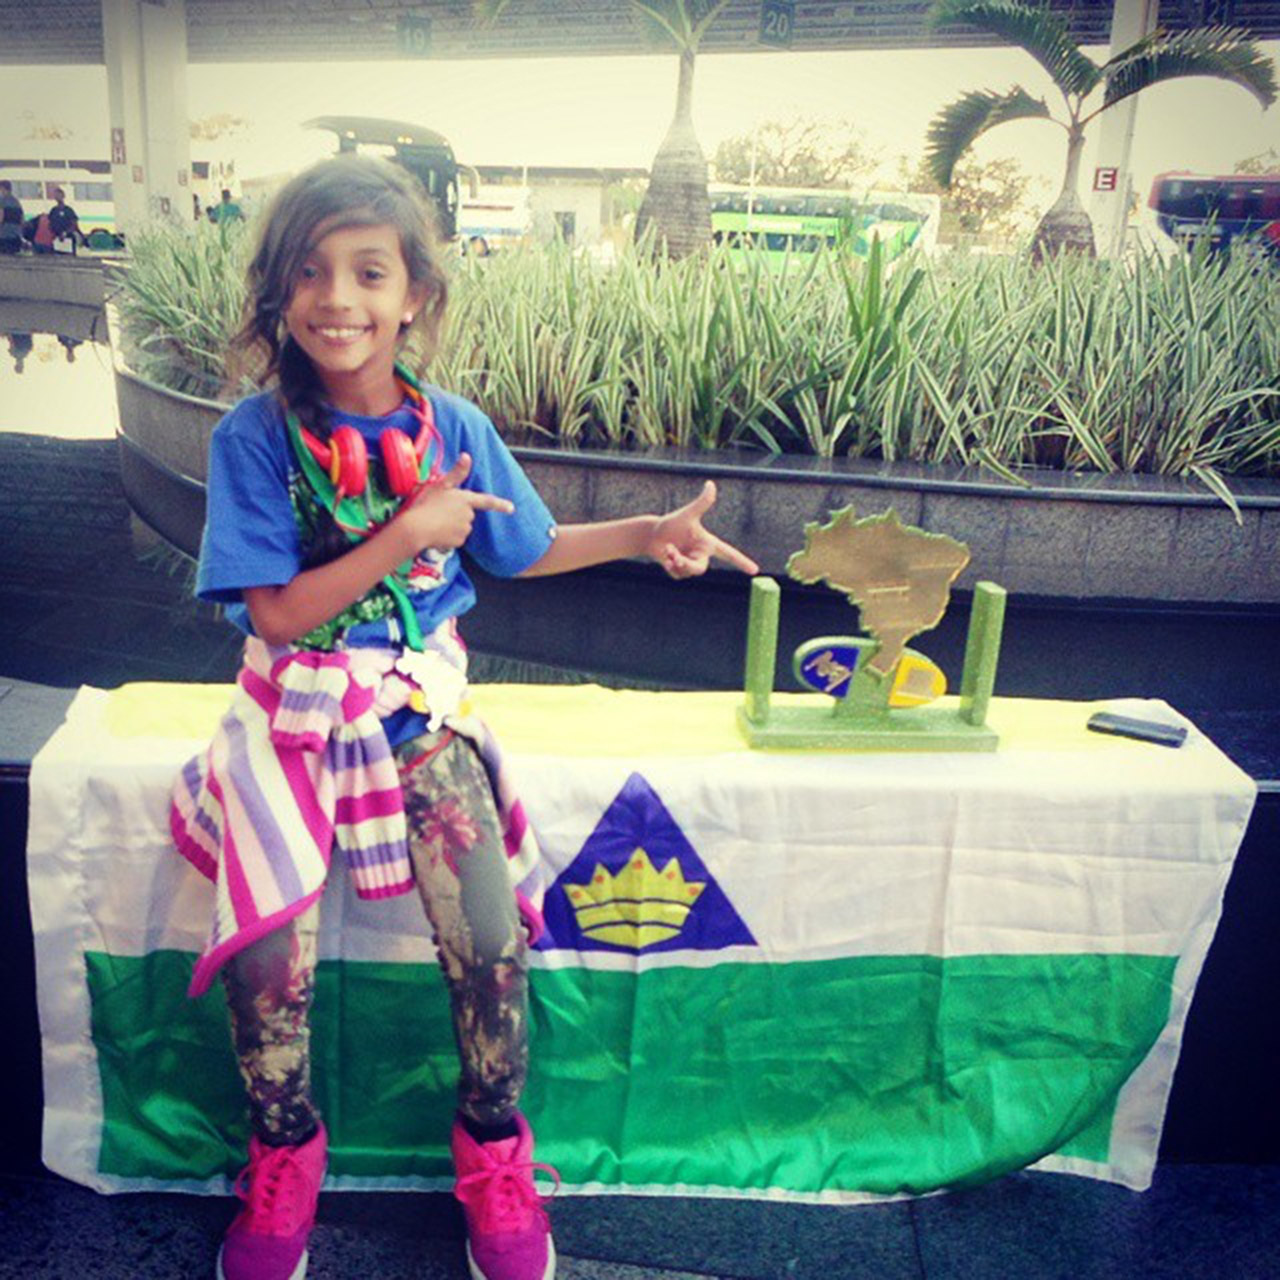 Brazilian 7-year-old Rayssa Leal is a skateboarding prodigy